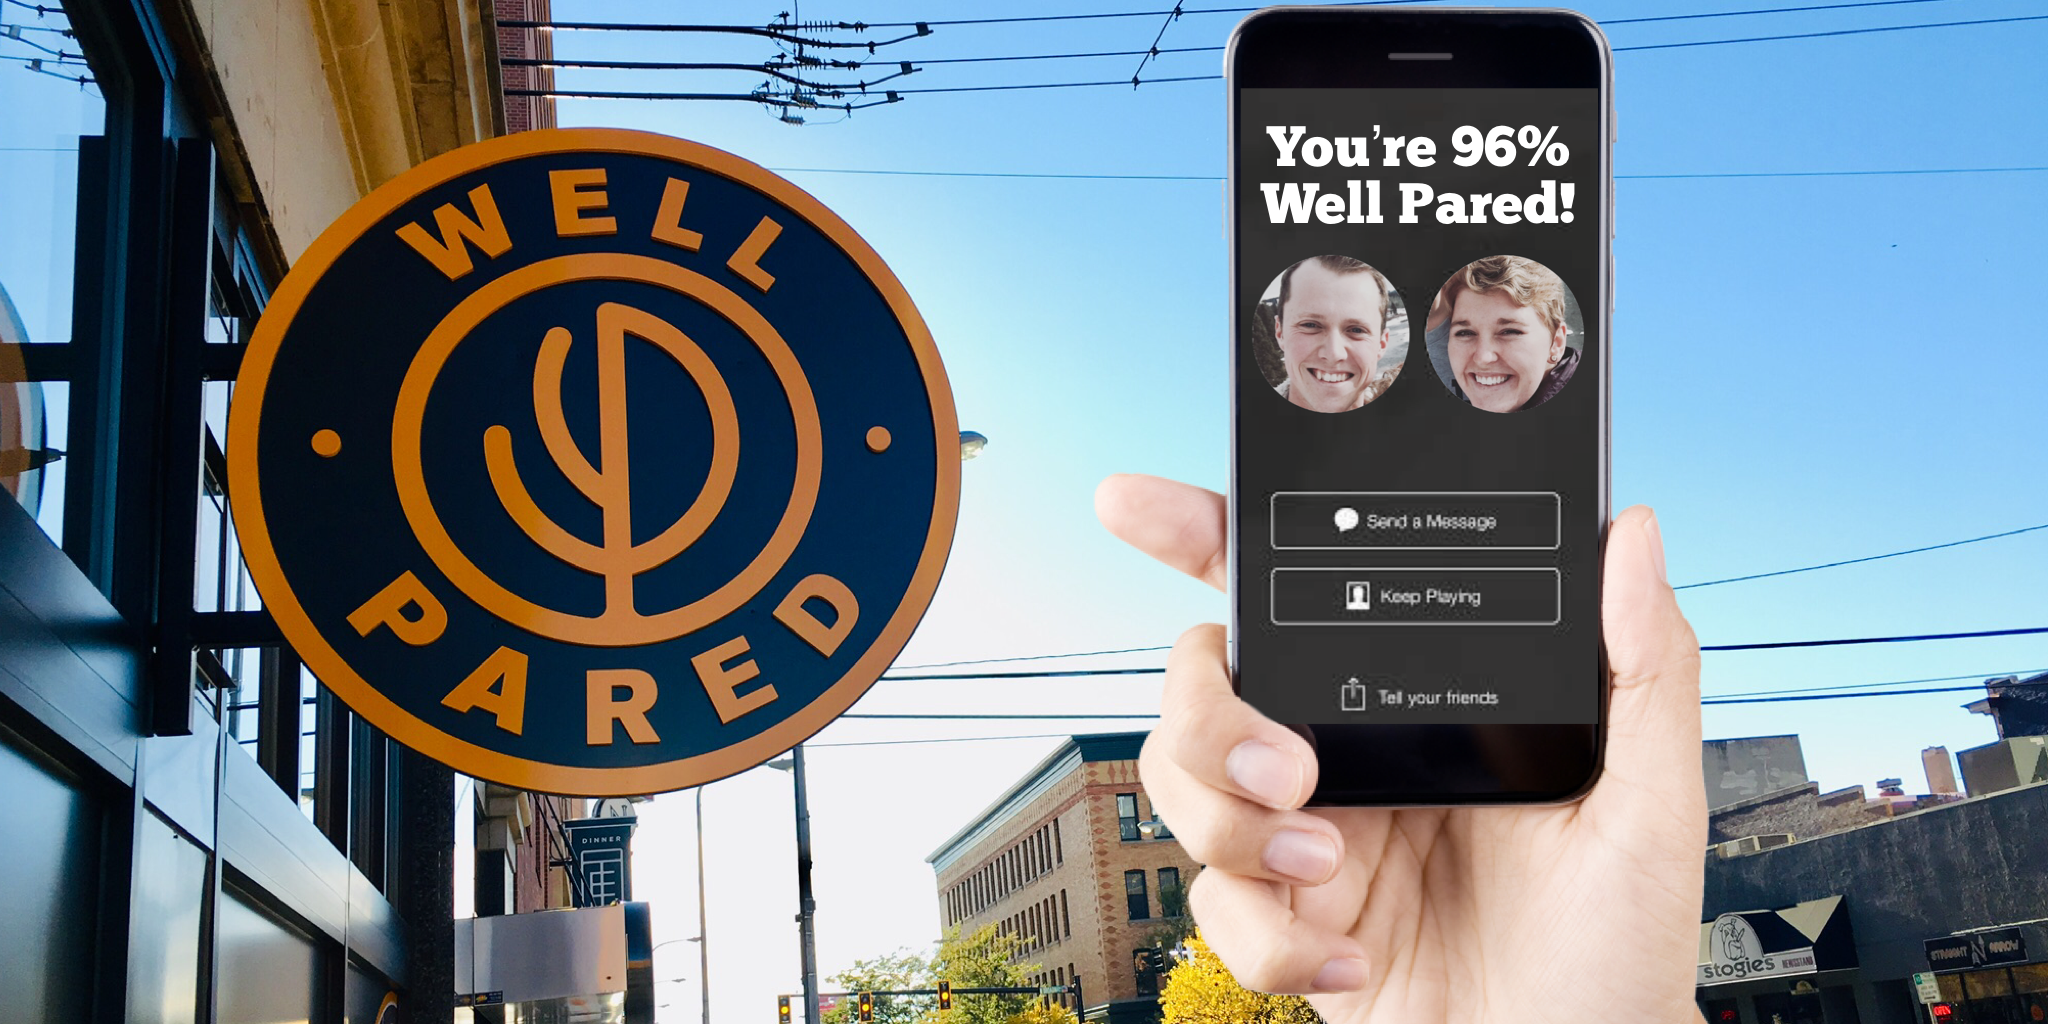 Well Pared now aims to pair more than just flavors